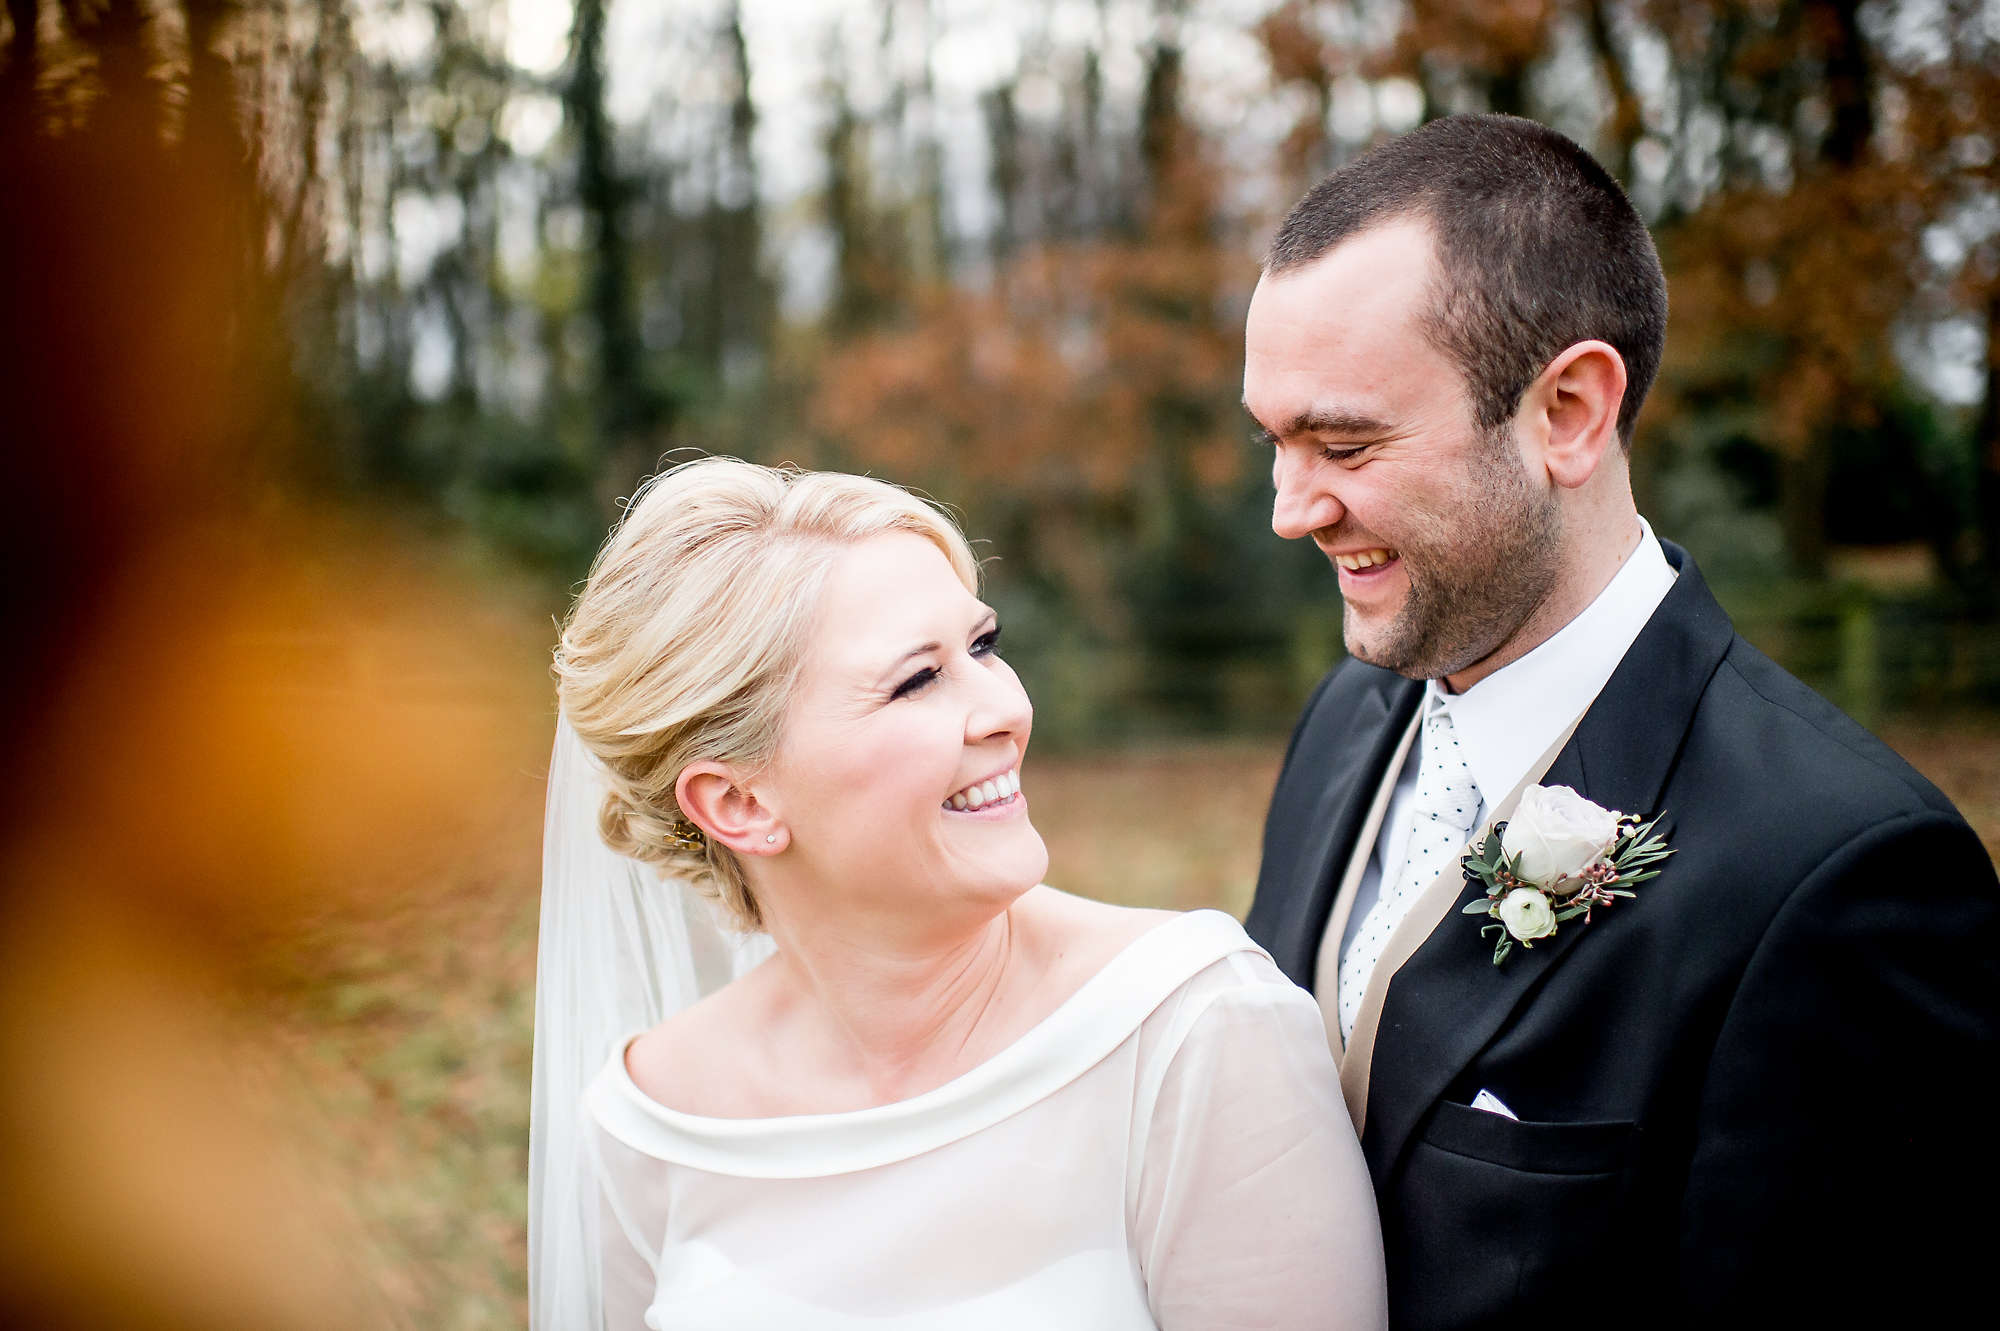 Priory cottages wedding photographer 0026